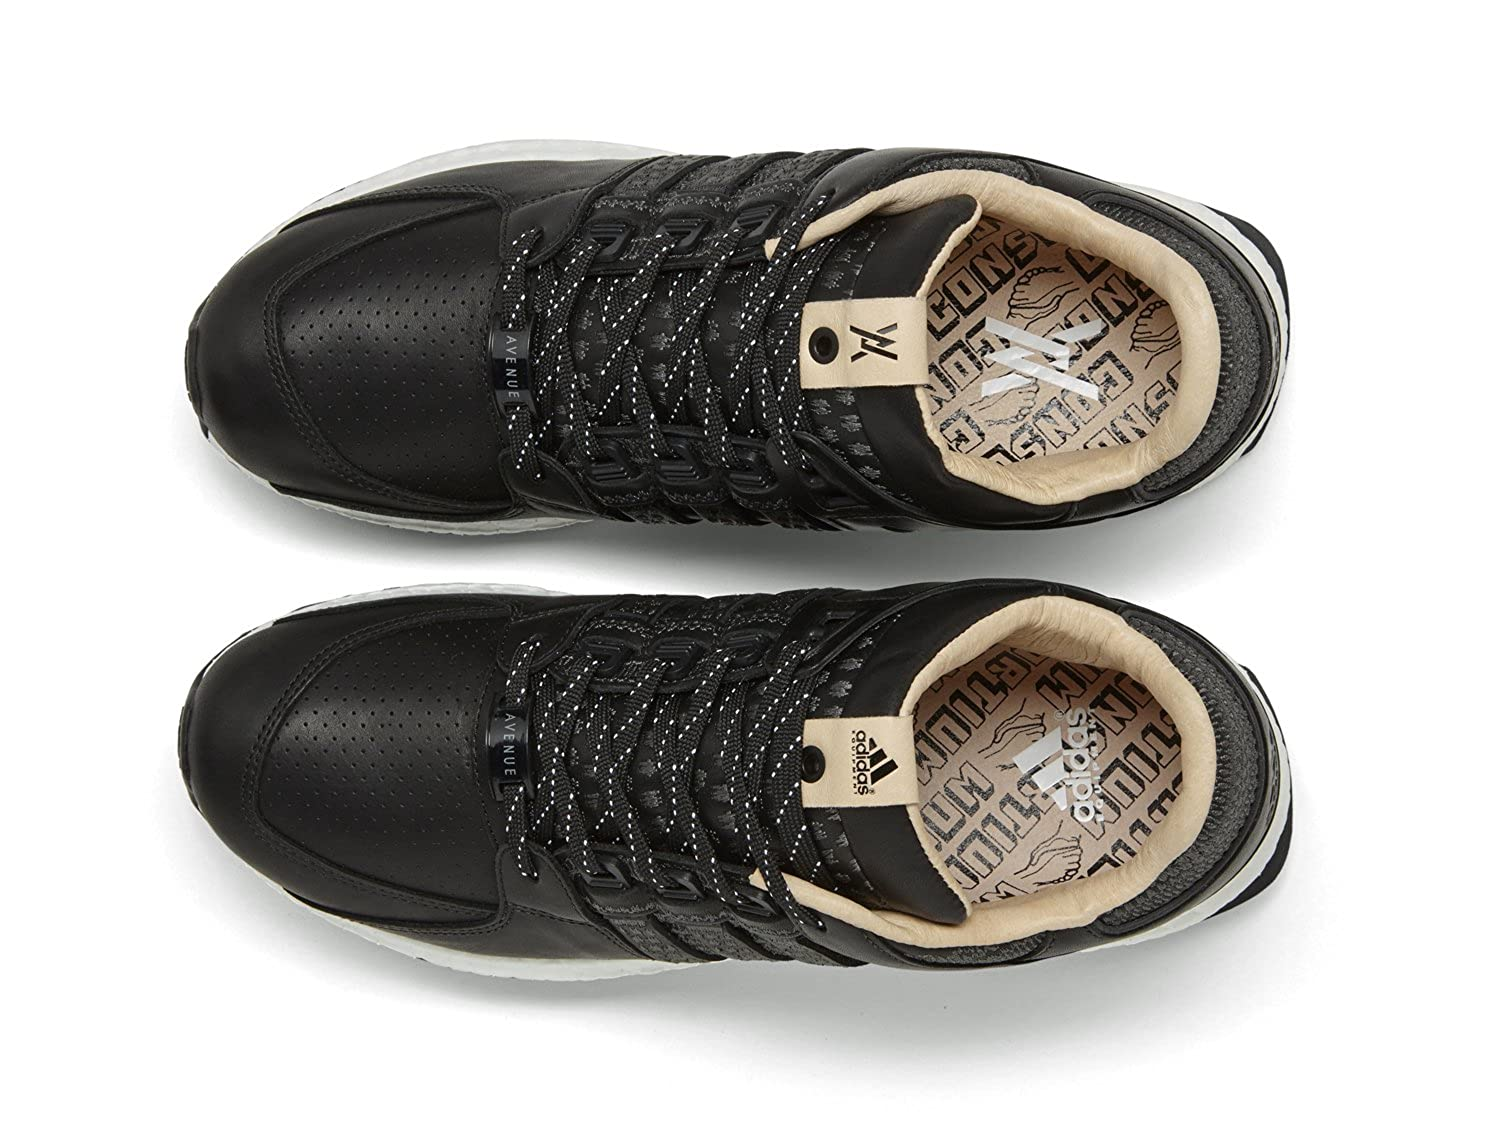 outlet store bd11d be939 Amazon.com  adidas Consortium x Avenue Men EQT 9316 Support (BlackVegetable  tanWhite)  Fashion Sneakers